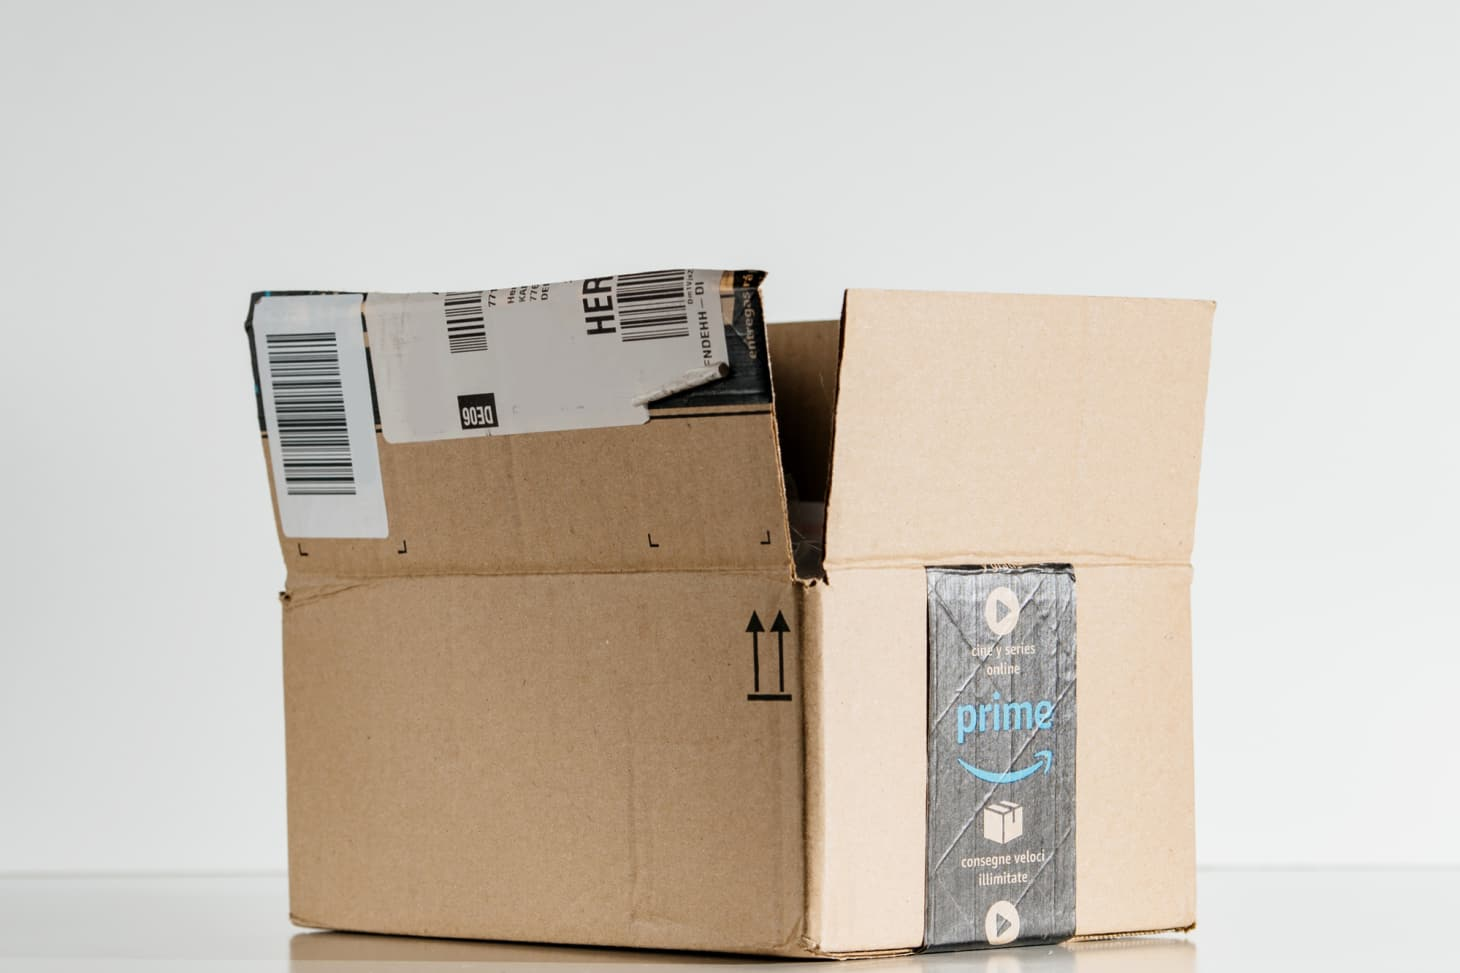 8dbf6d57aa5 Where and How to Recycle Amazon Boxes and Packaging | Apartment Therapy